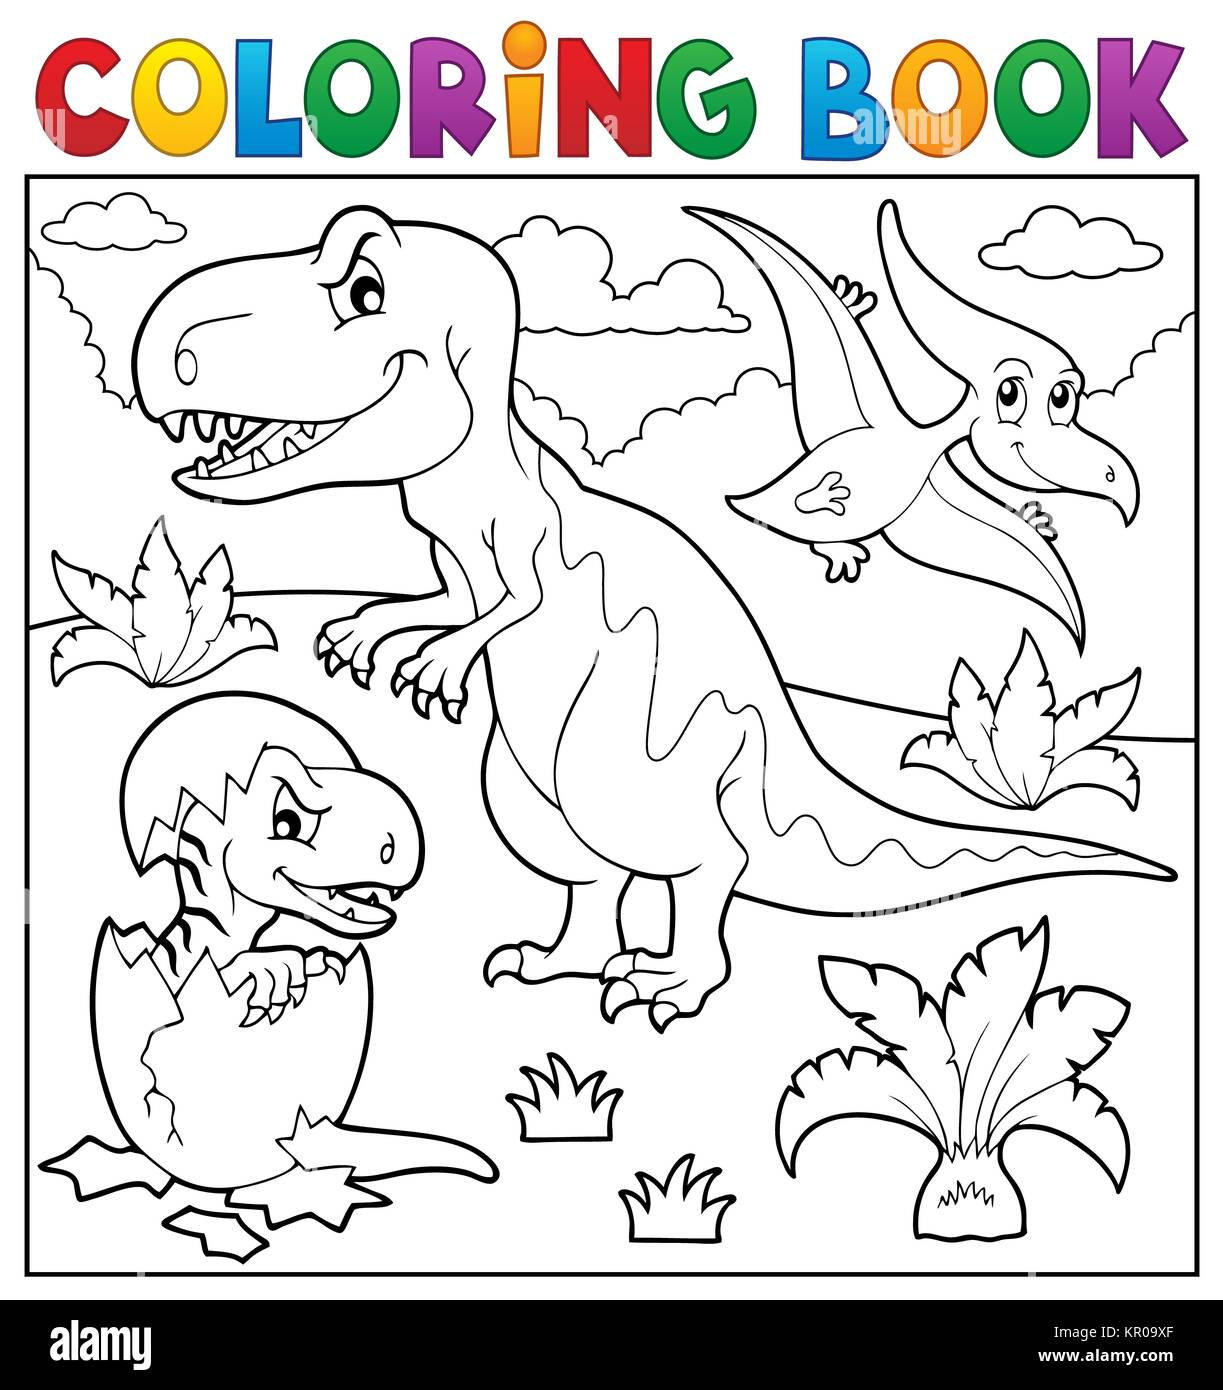 Coloring book dinosaur topic 9 - Stock Image